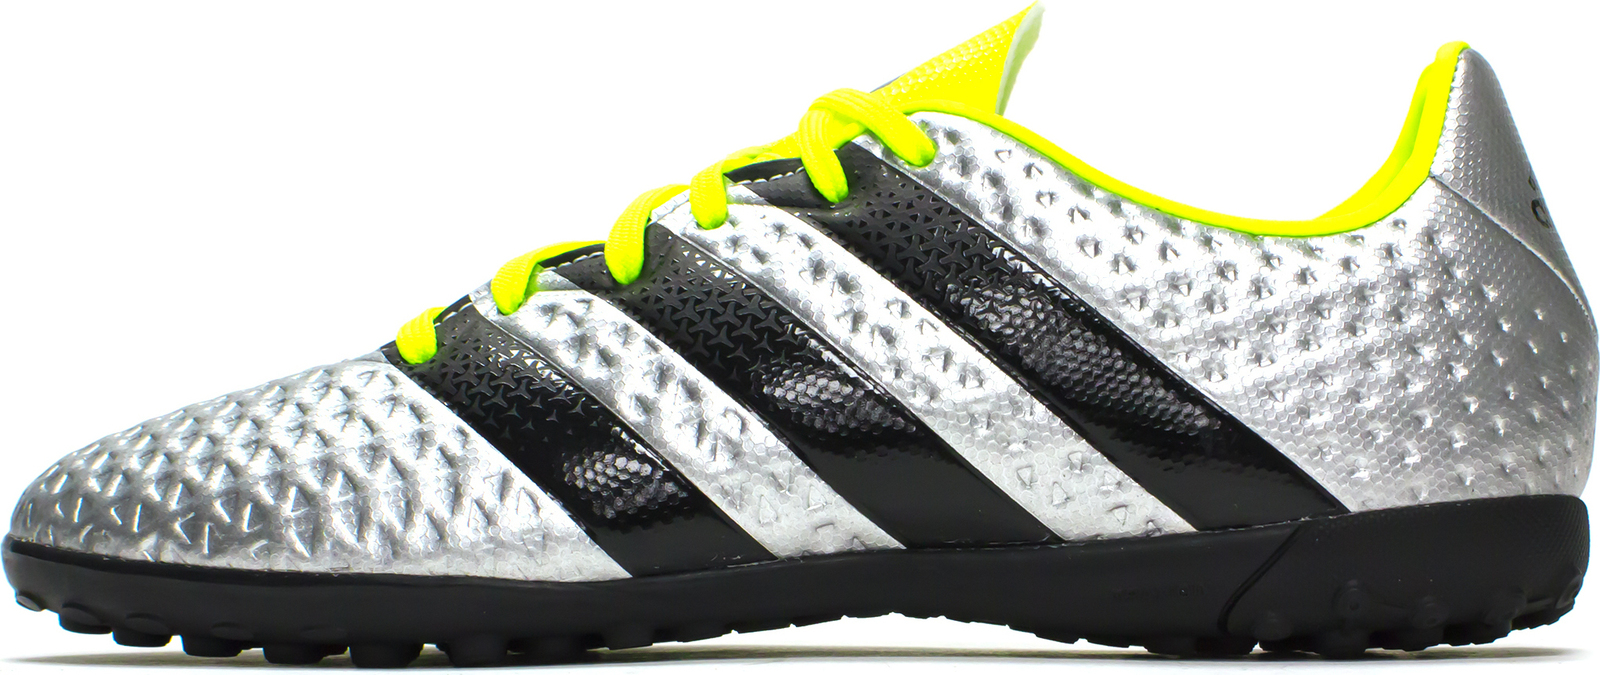 low priced 504a5 03274 Details about adidas Kids Boys Junior X 16.4 Ace Football Astro Turf Boots  Trainers Silver